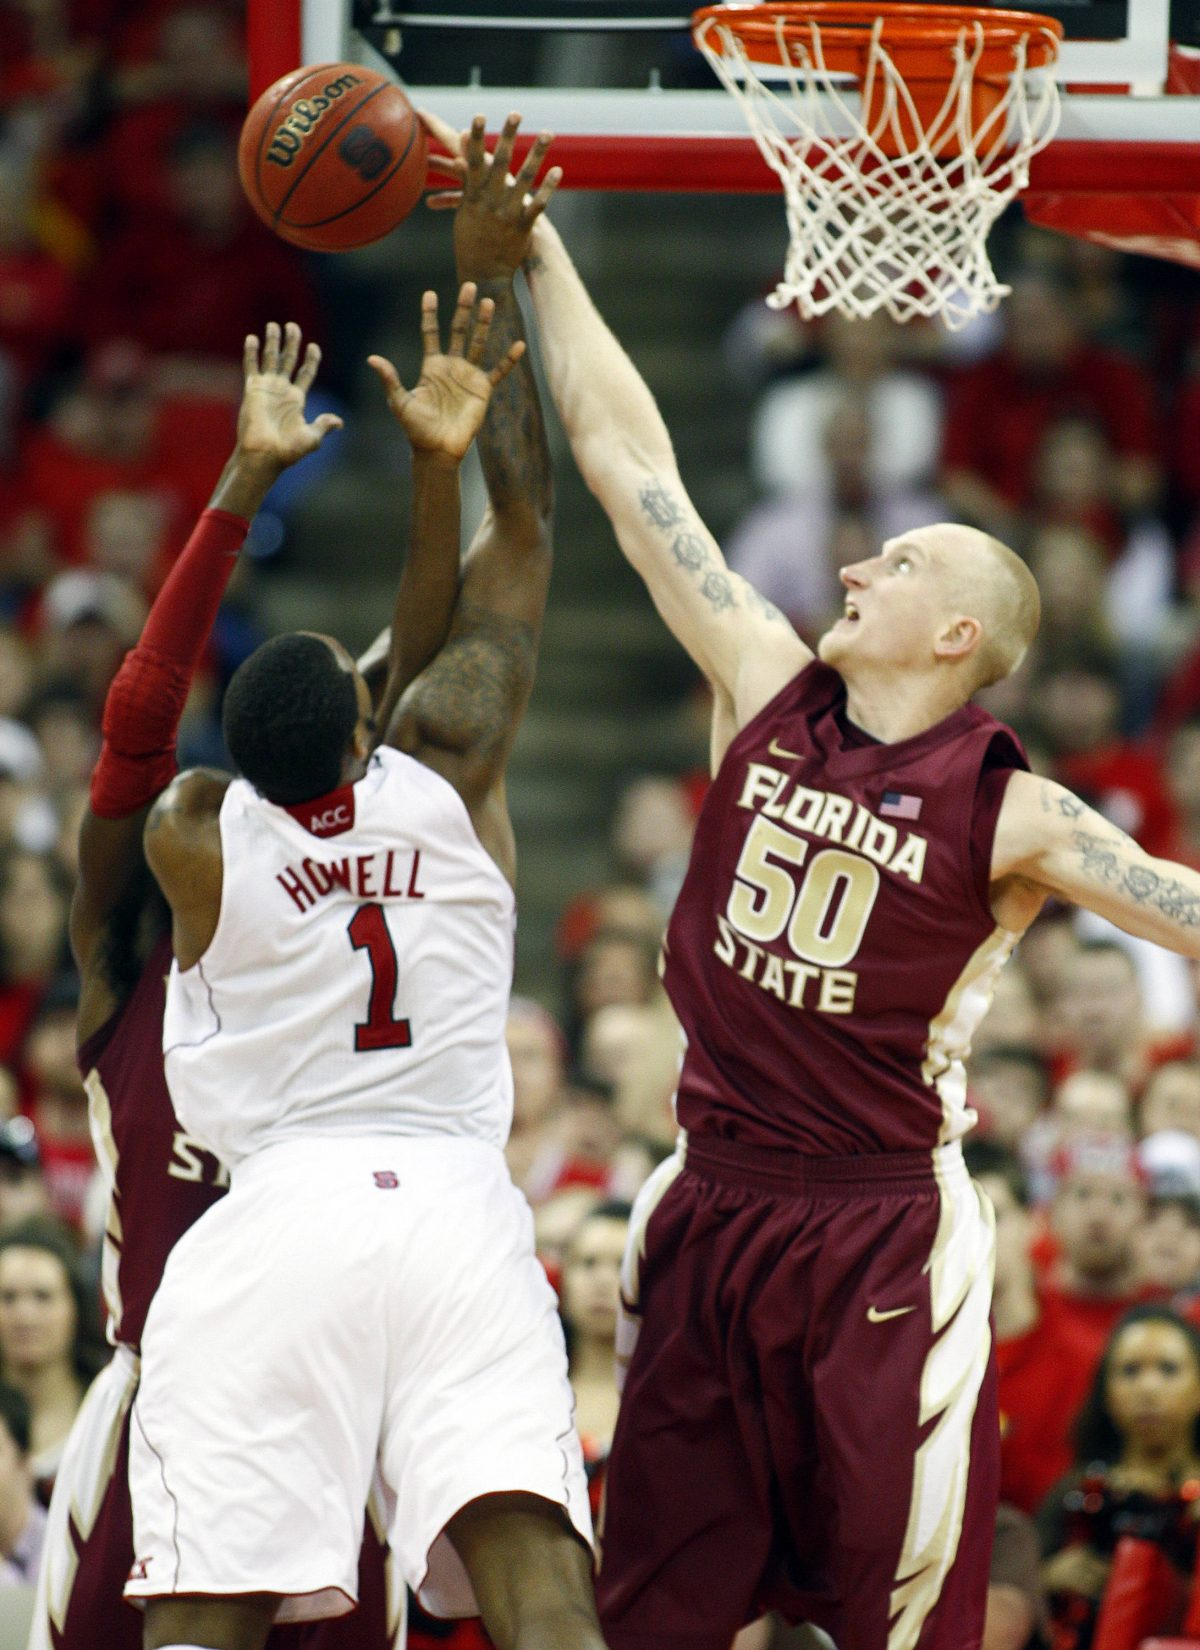 Florida State's Jon Kreft (50) blocks the shot of North Carolina State's Richard Howell (1) during the second half of an NCAA college basketball game in Raleigh, N.C., Saturday, Feb. 18, 2012. Florida State won 76-62. (AP Photo/Karl B DeBlaker)